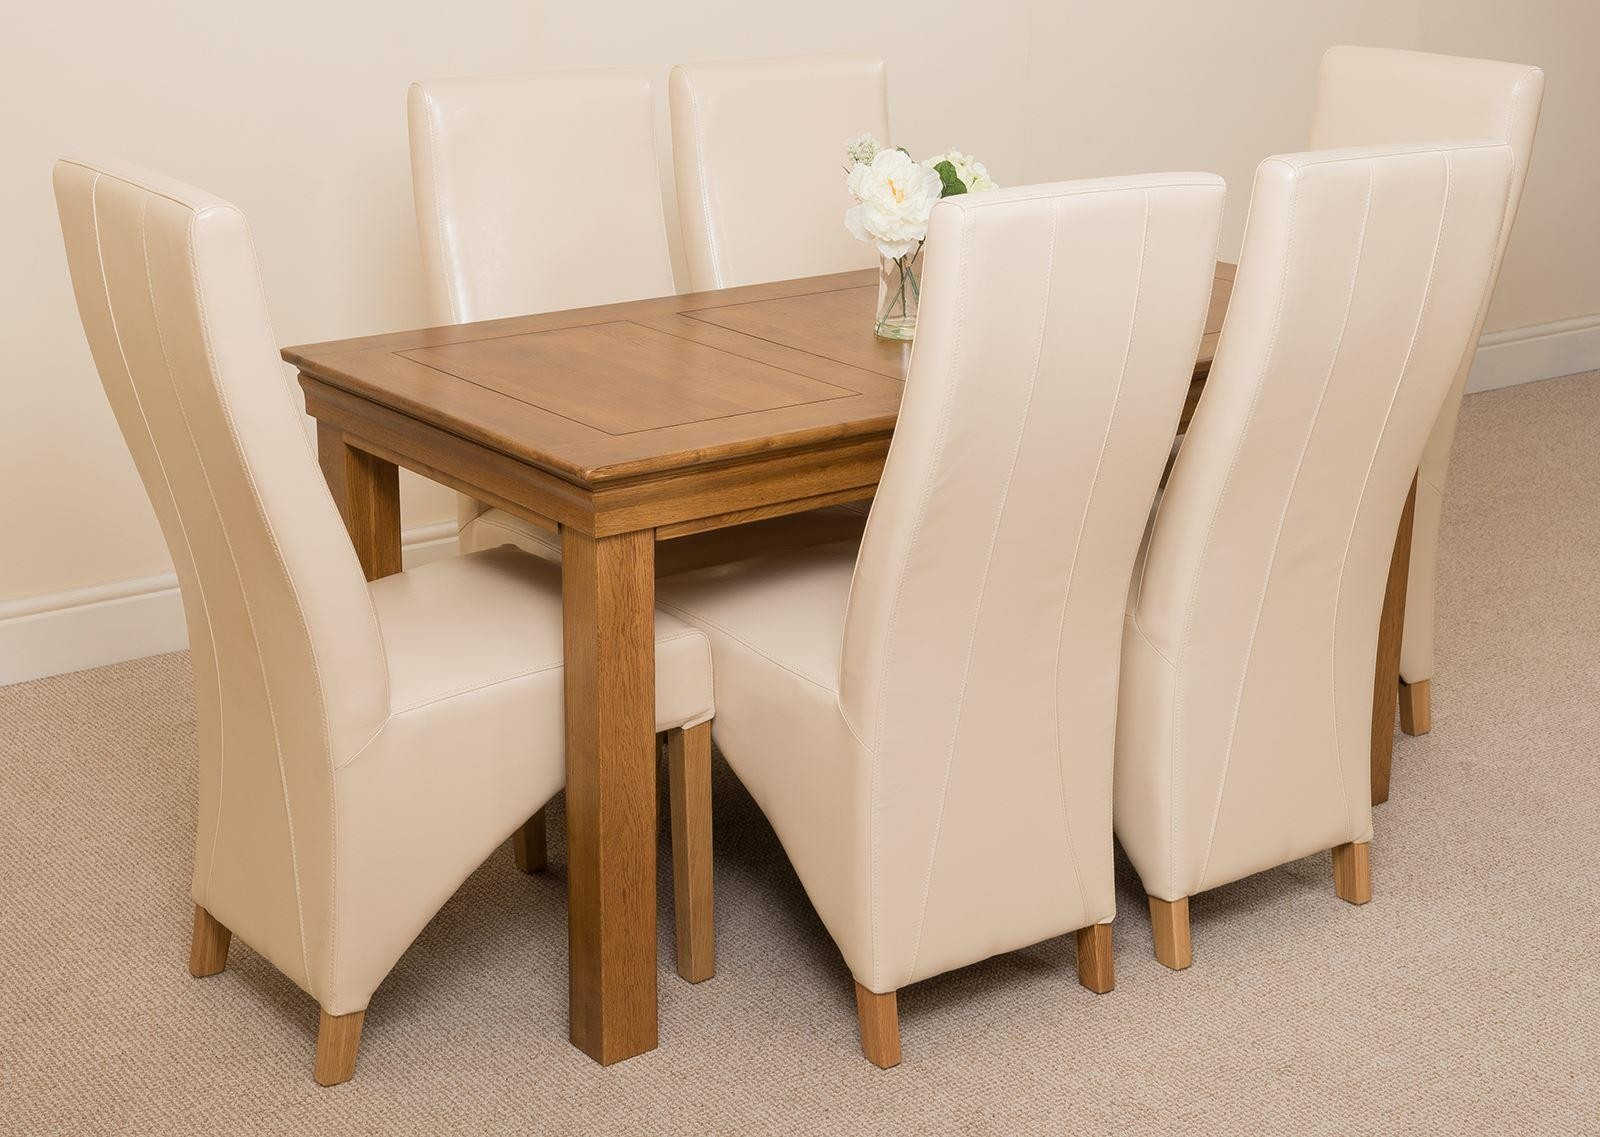 French Chateau Rustic Solid Oak 150cm Dining Table with 6 Lola Dining Chairs [Ivory Leather] & French Chateau Rustic Oak Dining Table with 6 Ivory Lola Dining Chairs